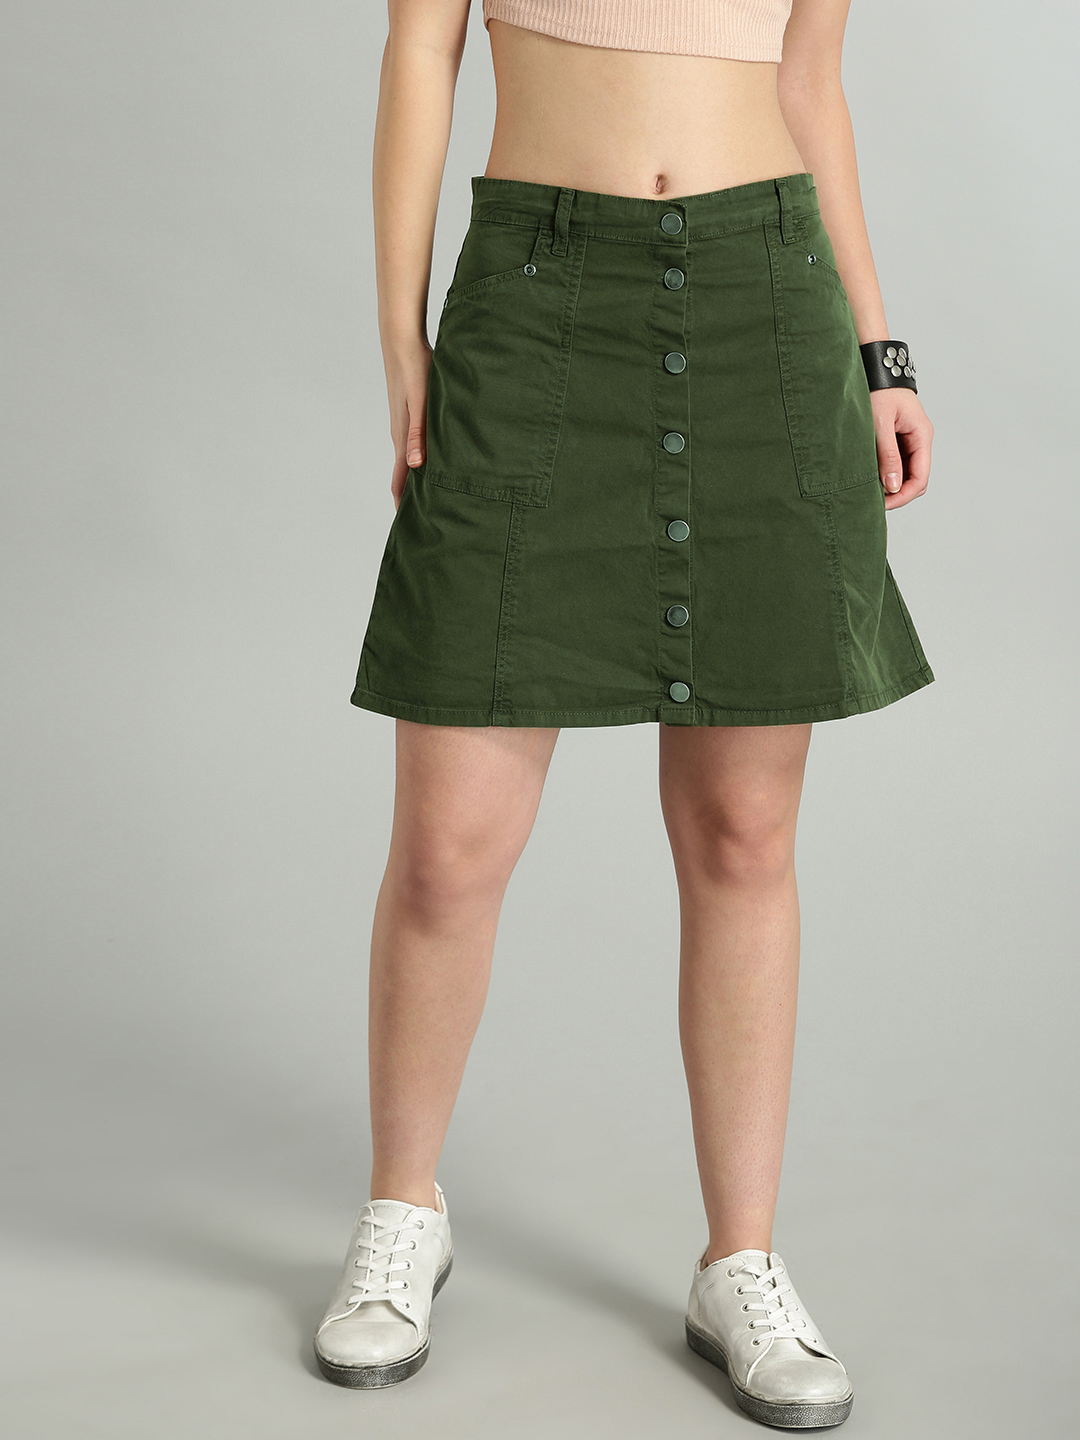 Best skirts for Women